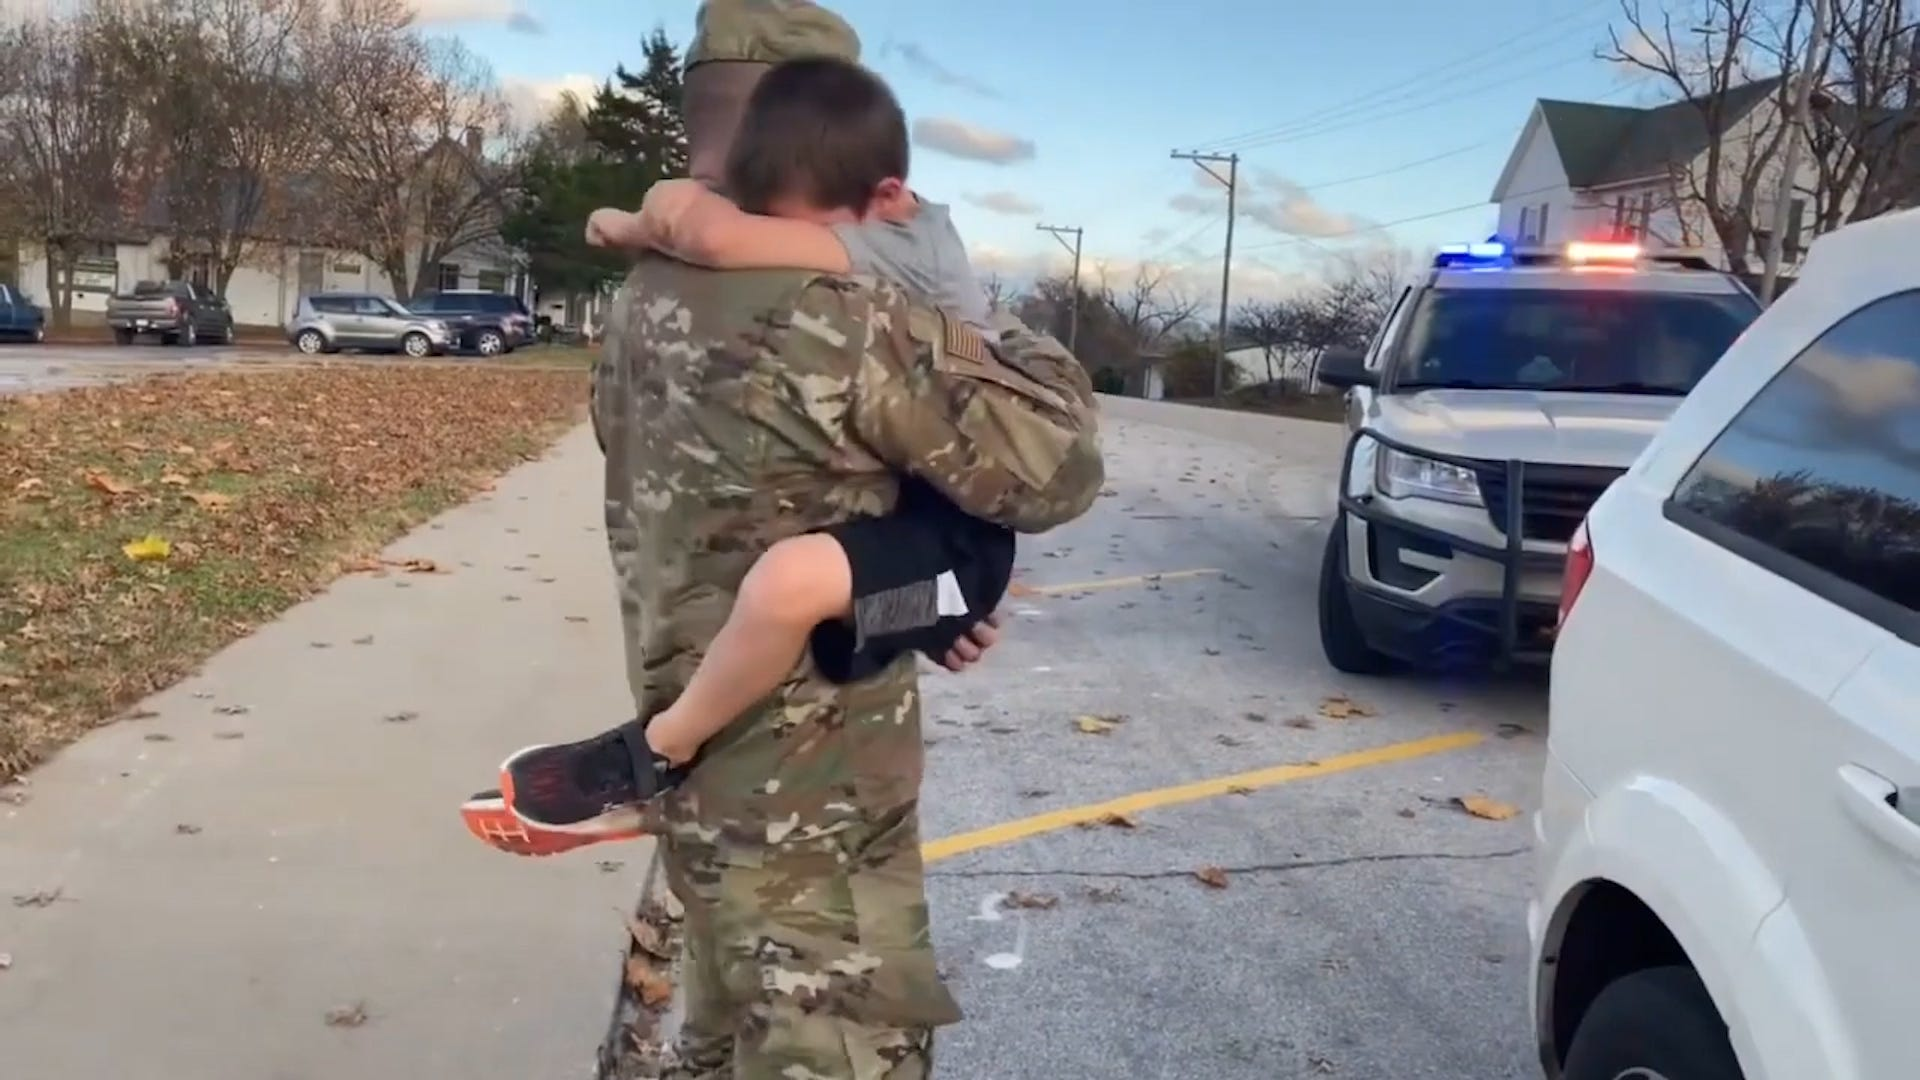 This traffic stop turned out to be a sneaky surprise homecoming